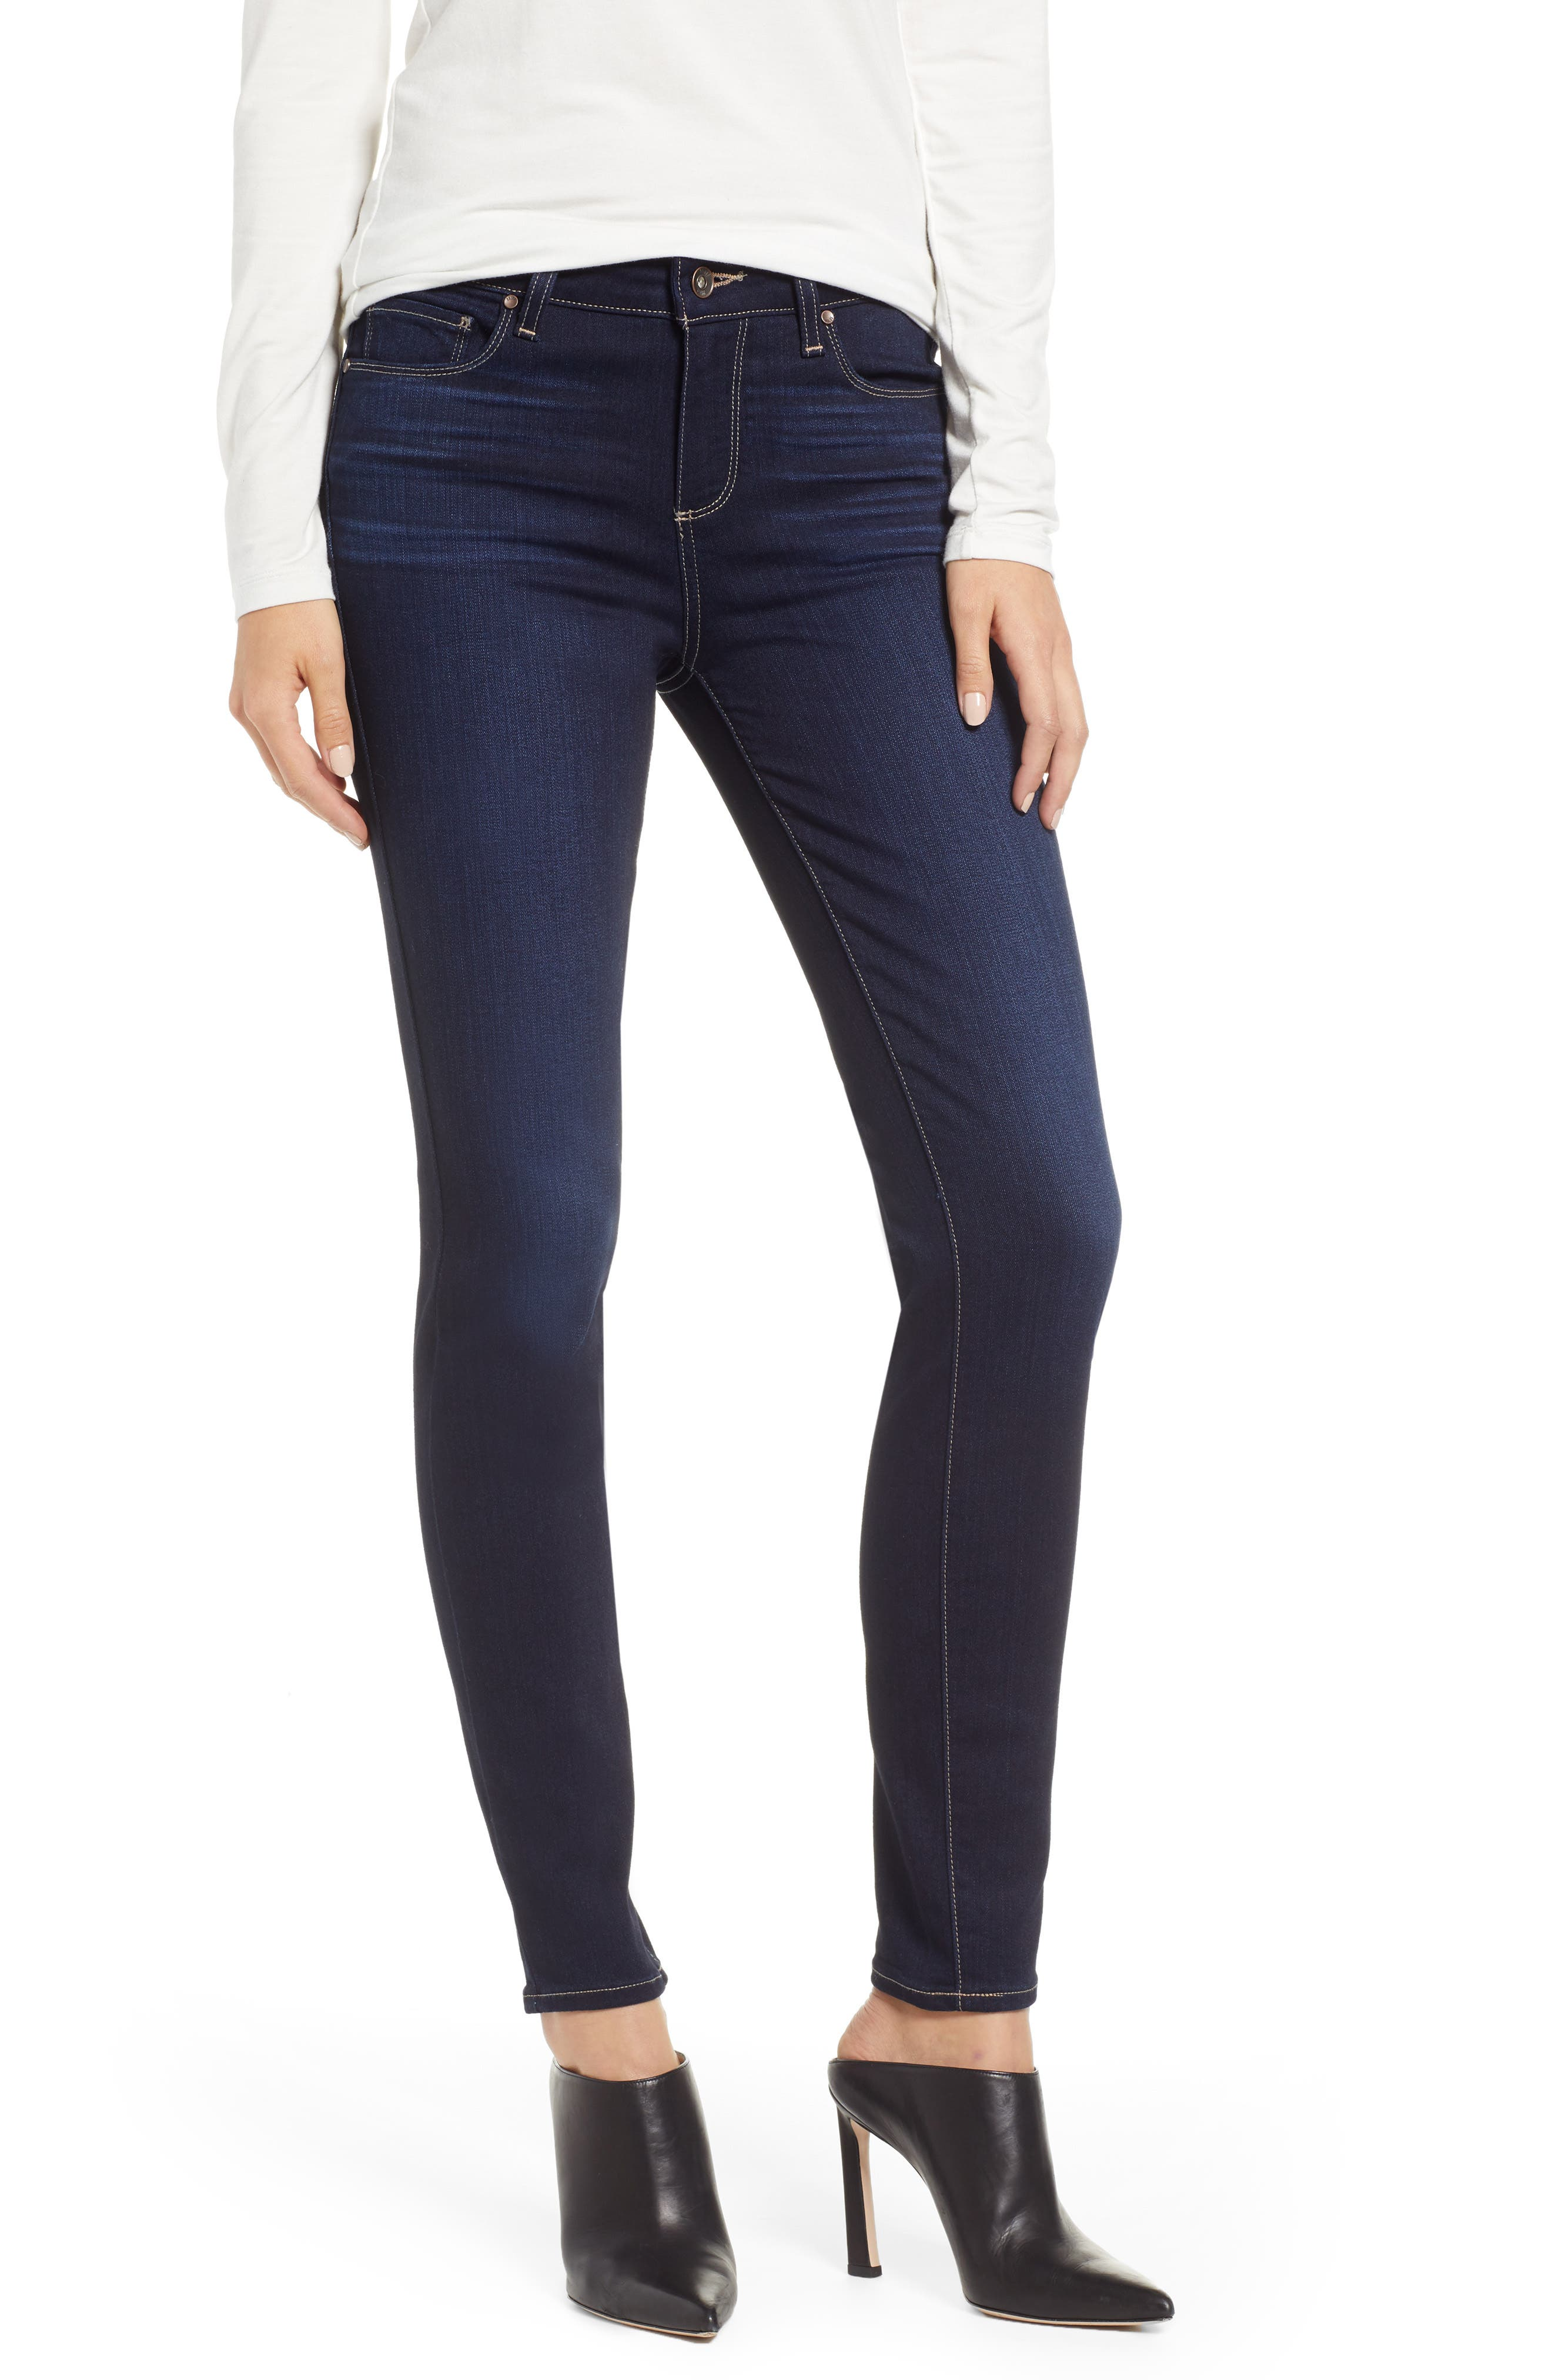 PAIGE,                             Transcend - Verdugo Ultra Skinny Jeans,                             Main thumbnail 1, color,                             ACADIA